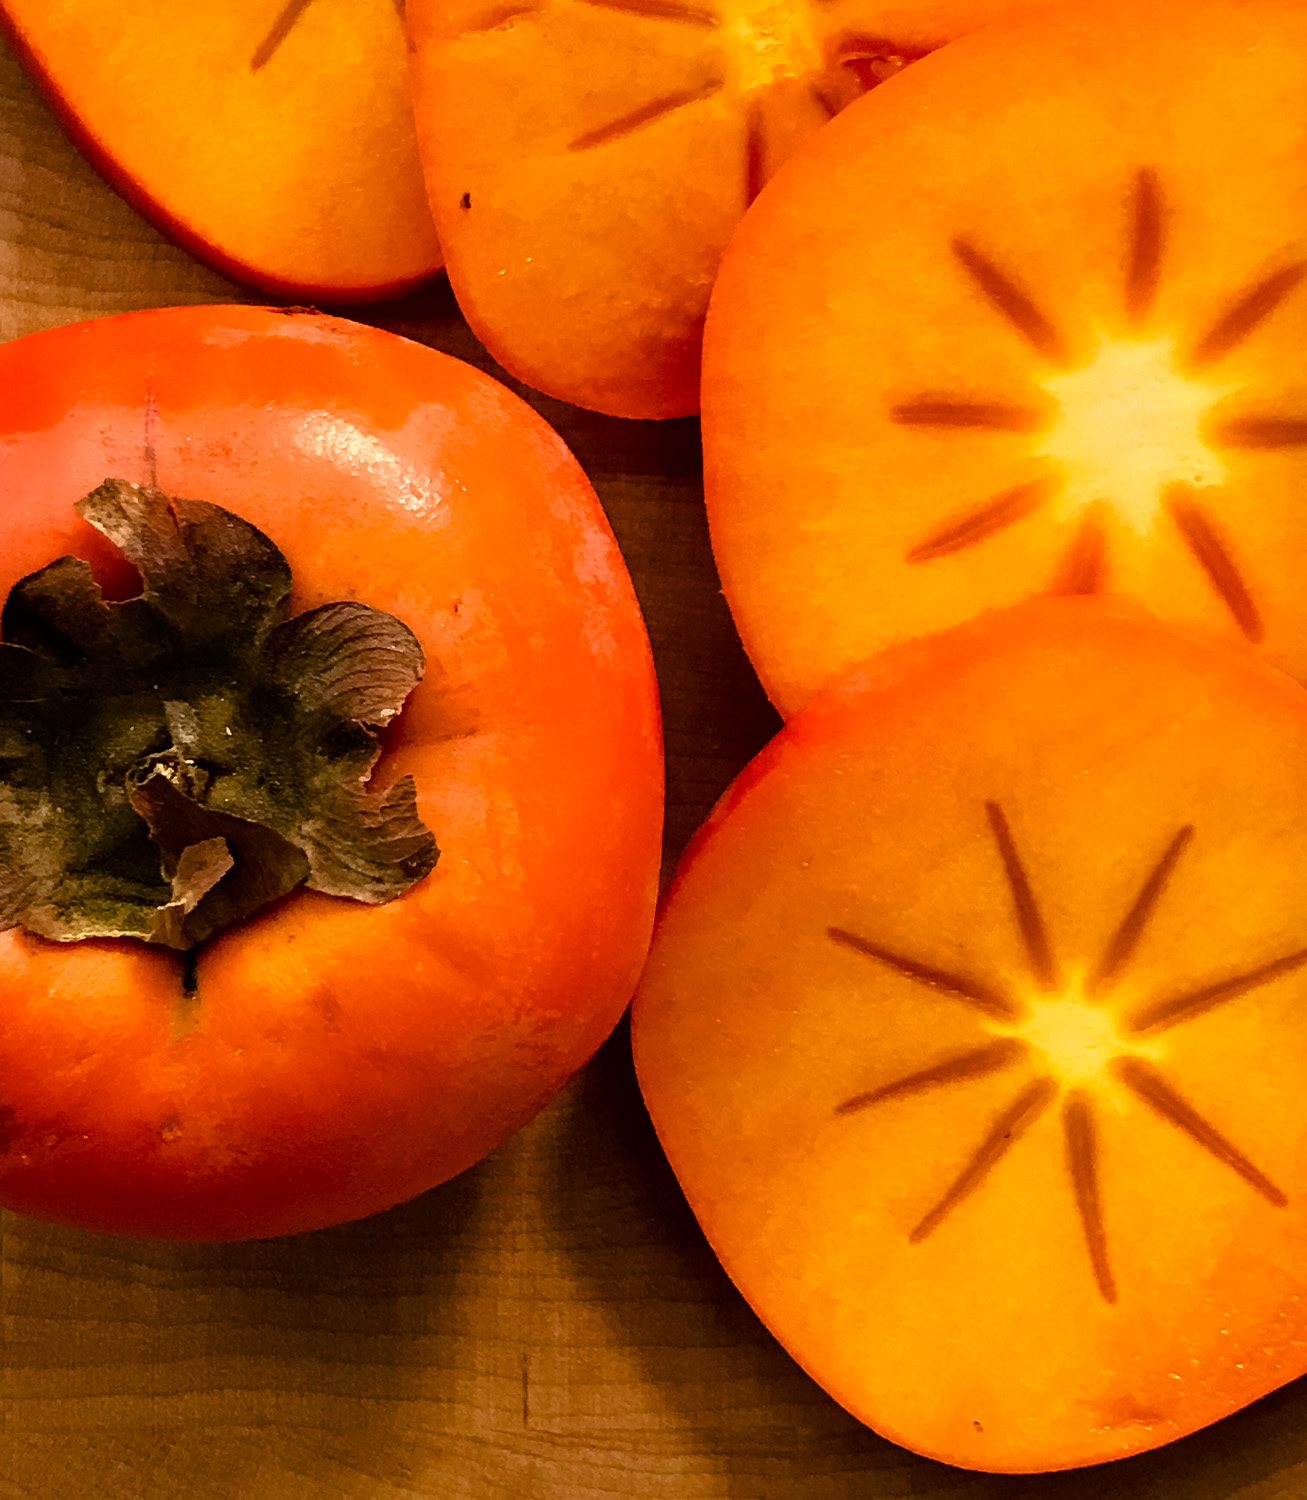 Fresh Persimmon and Slices